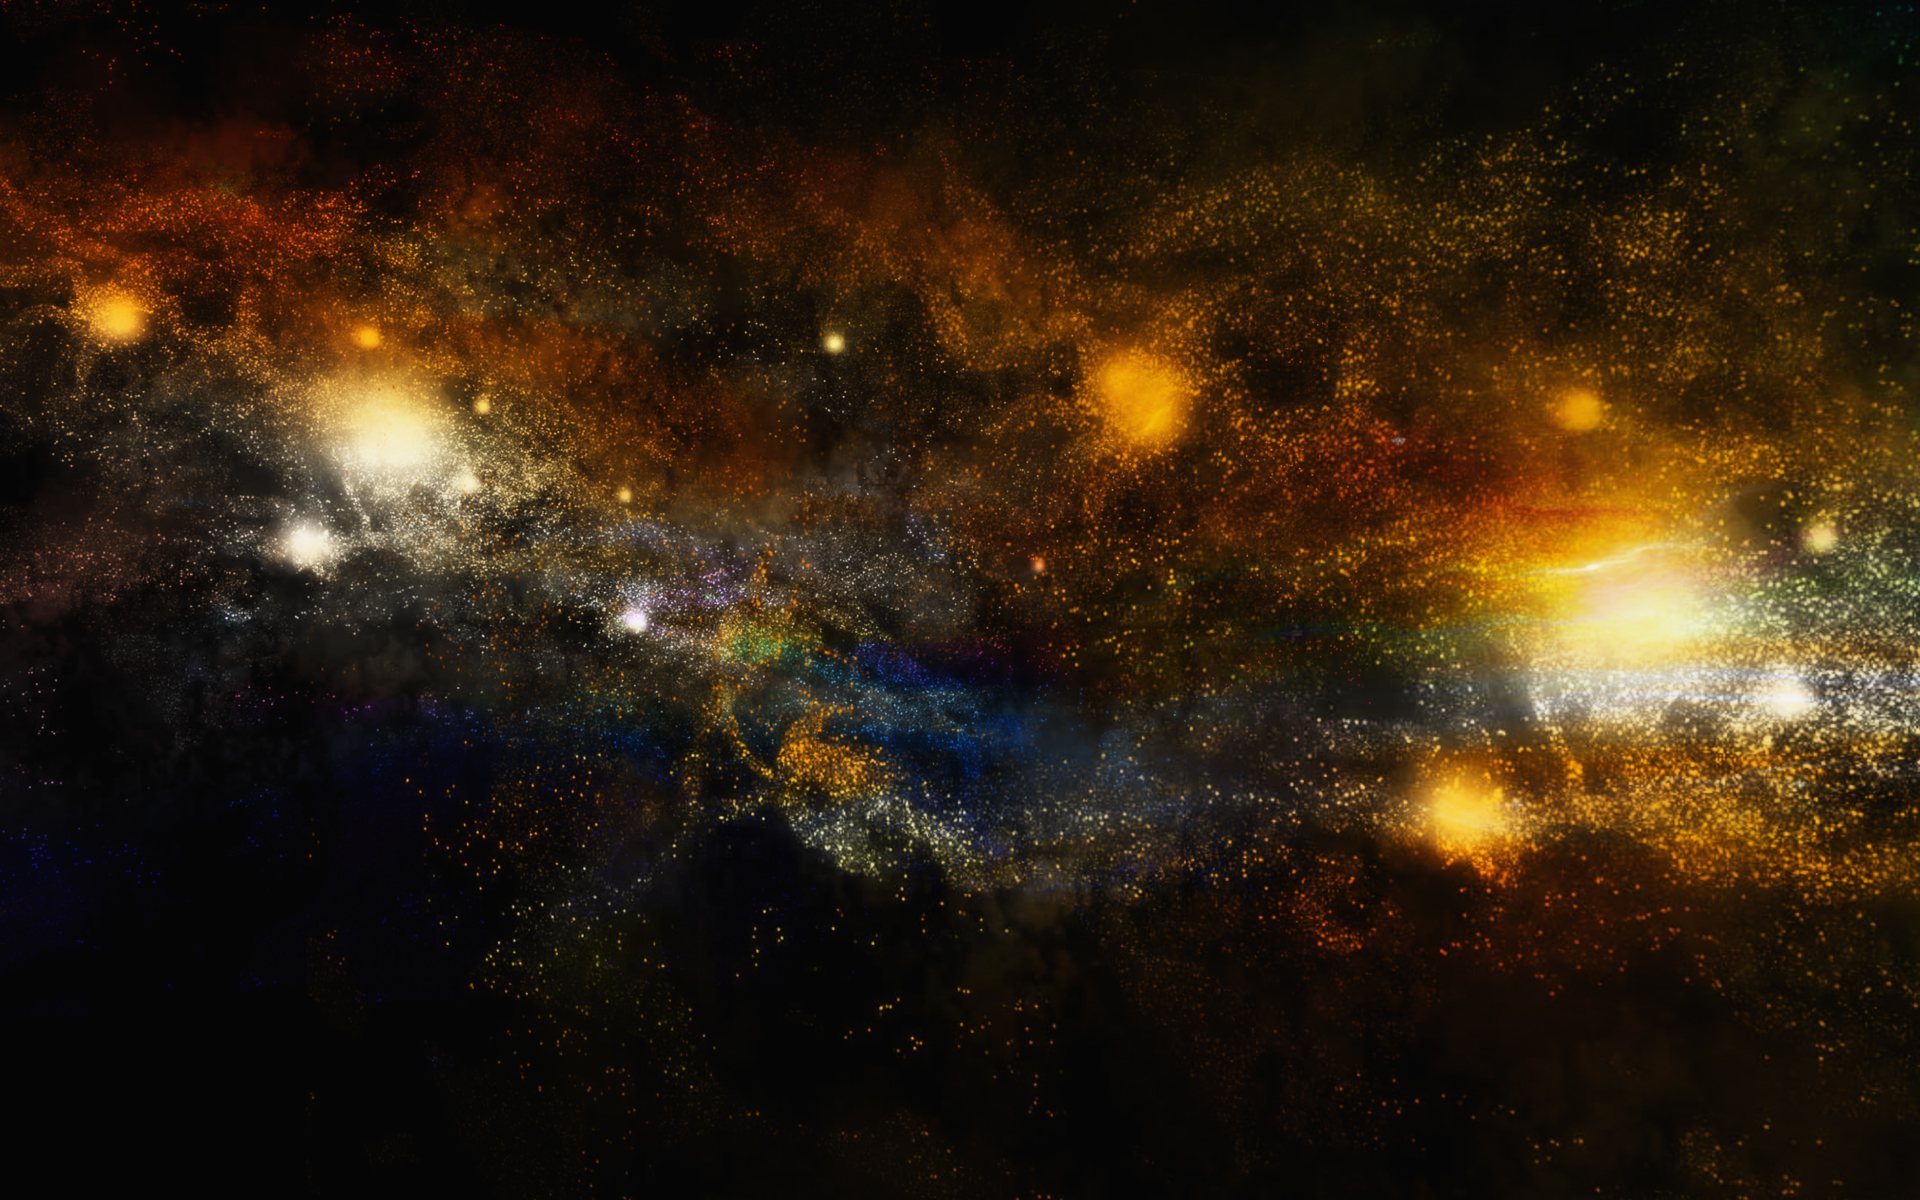 space hd 1920x1200 - photo #21